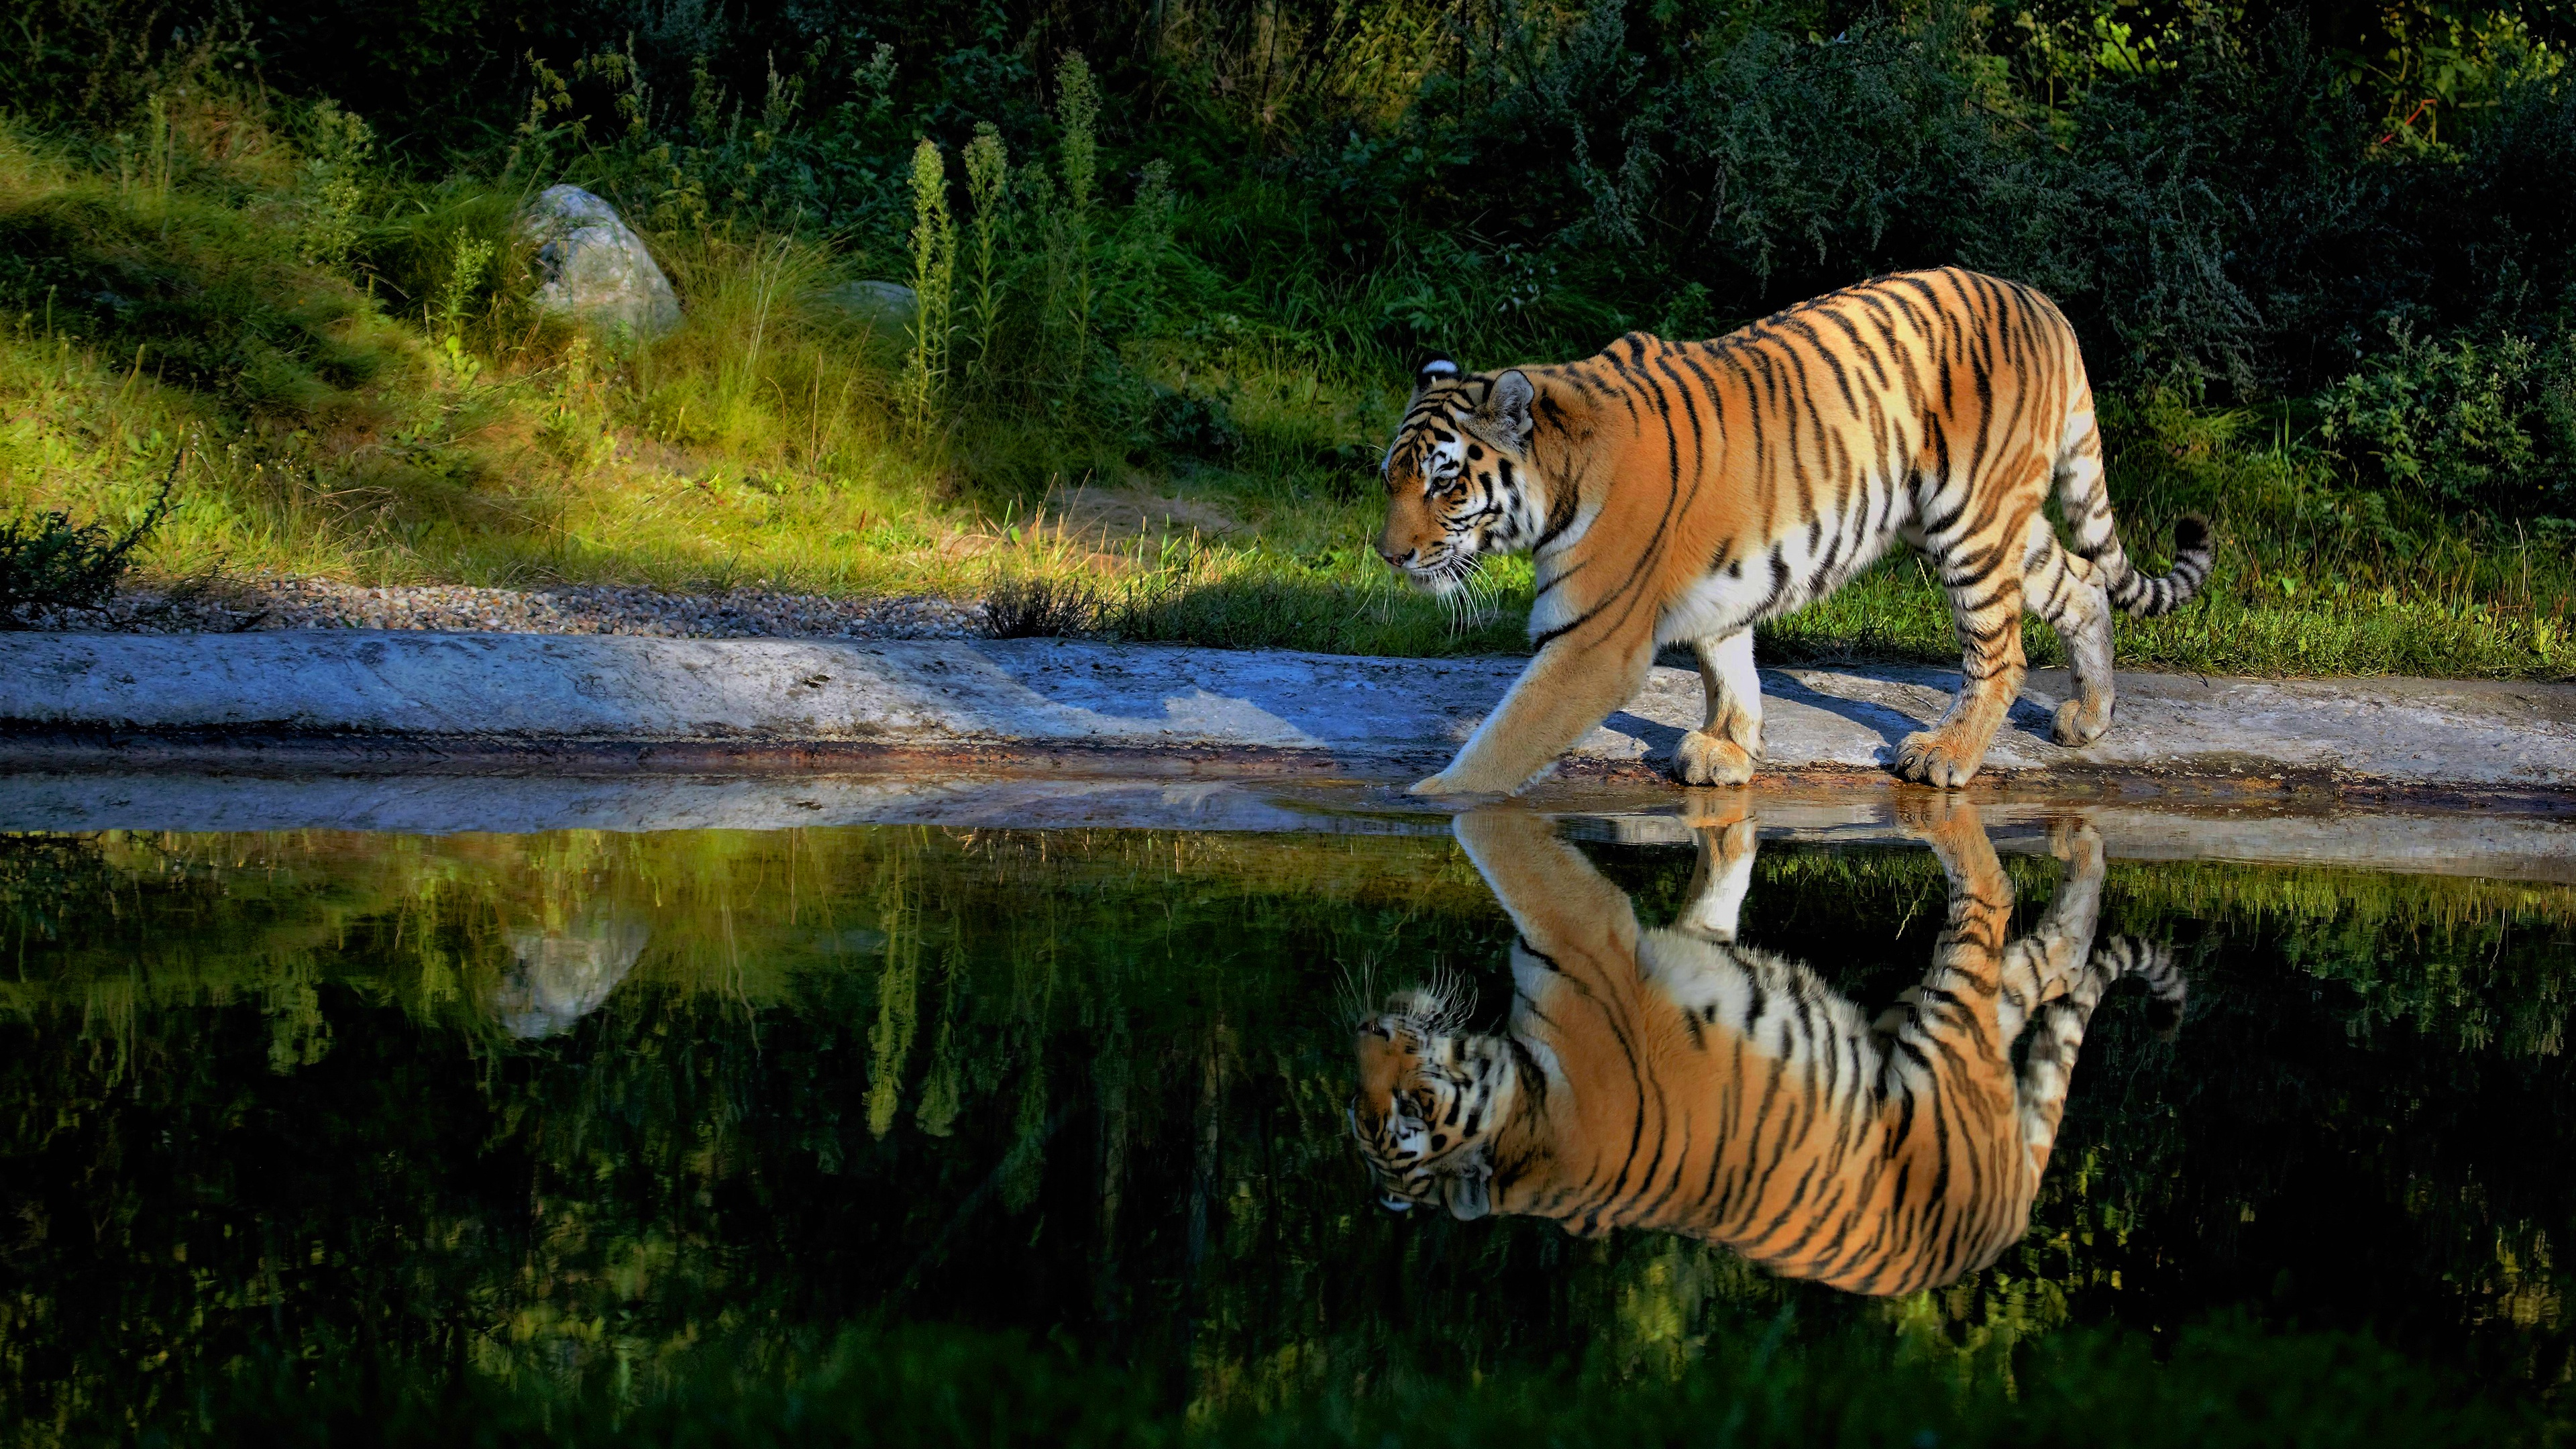 tiger walking on the pond way 1574938065 - Tiger Walking On The Pond Way -